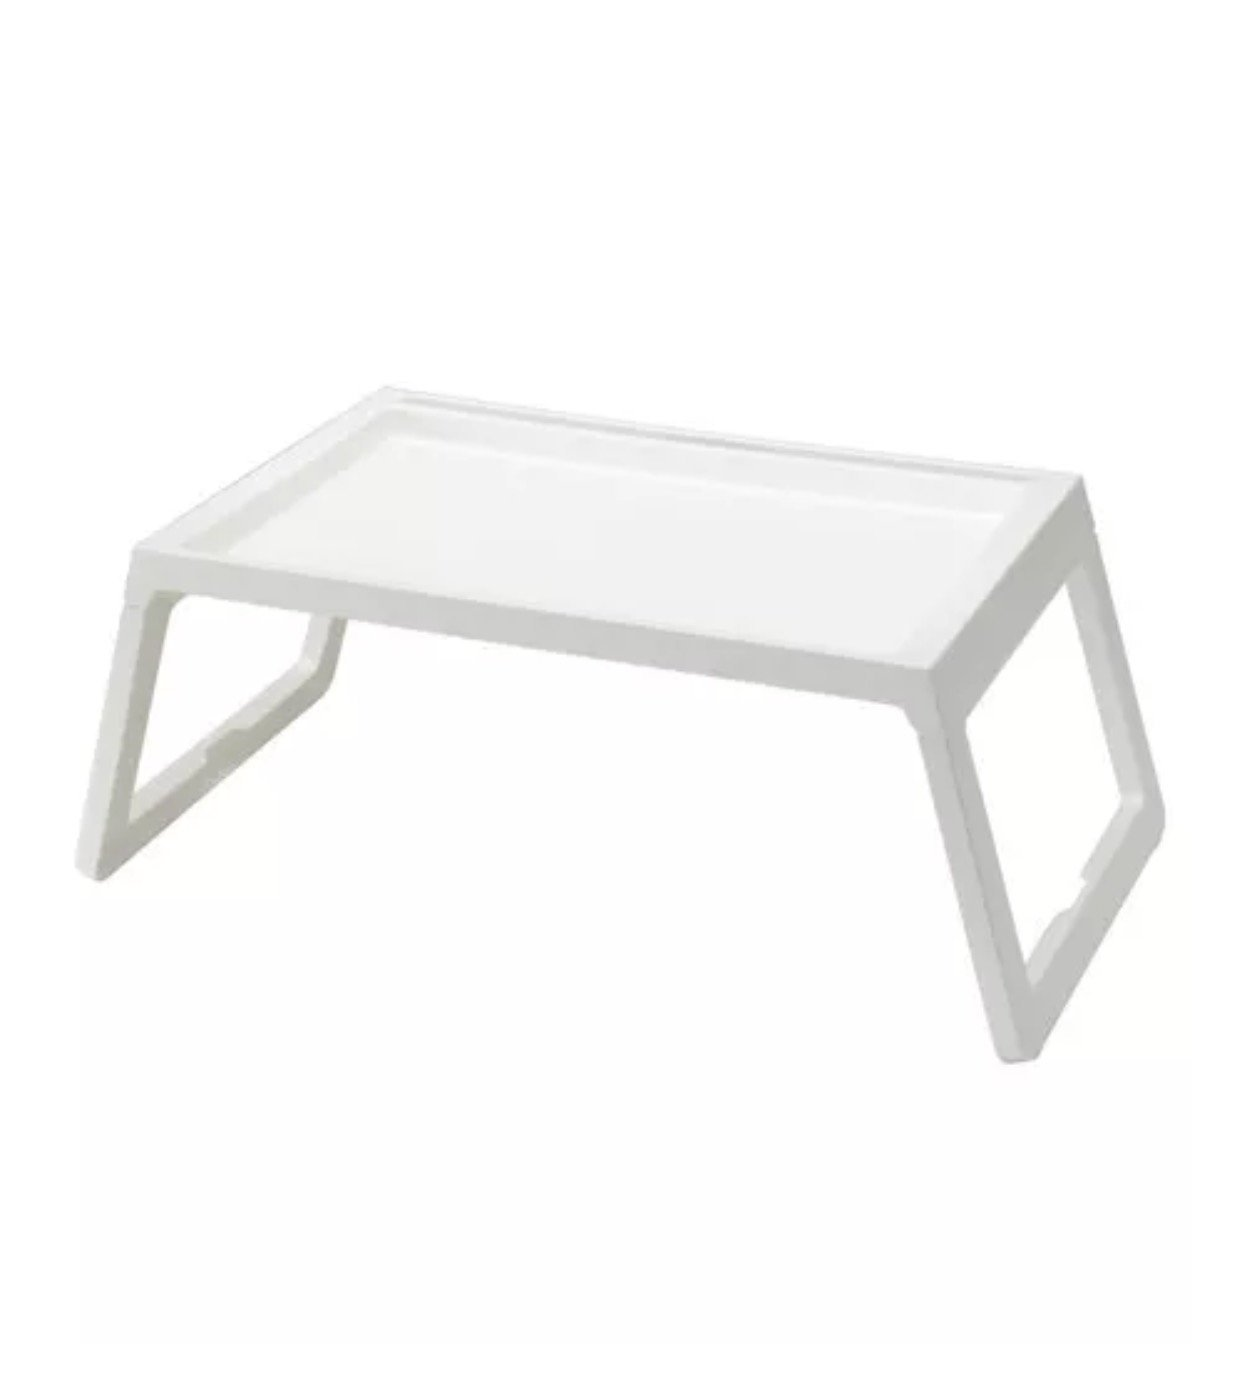 Ikea Klipsk Foldable Bed Tray, white: Amazon.in: Home & Kitchen